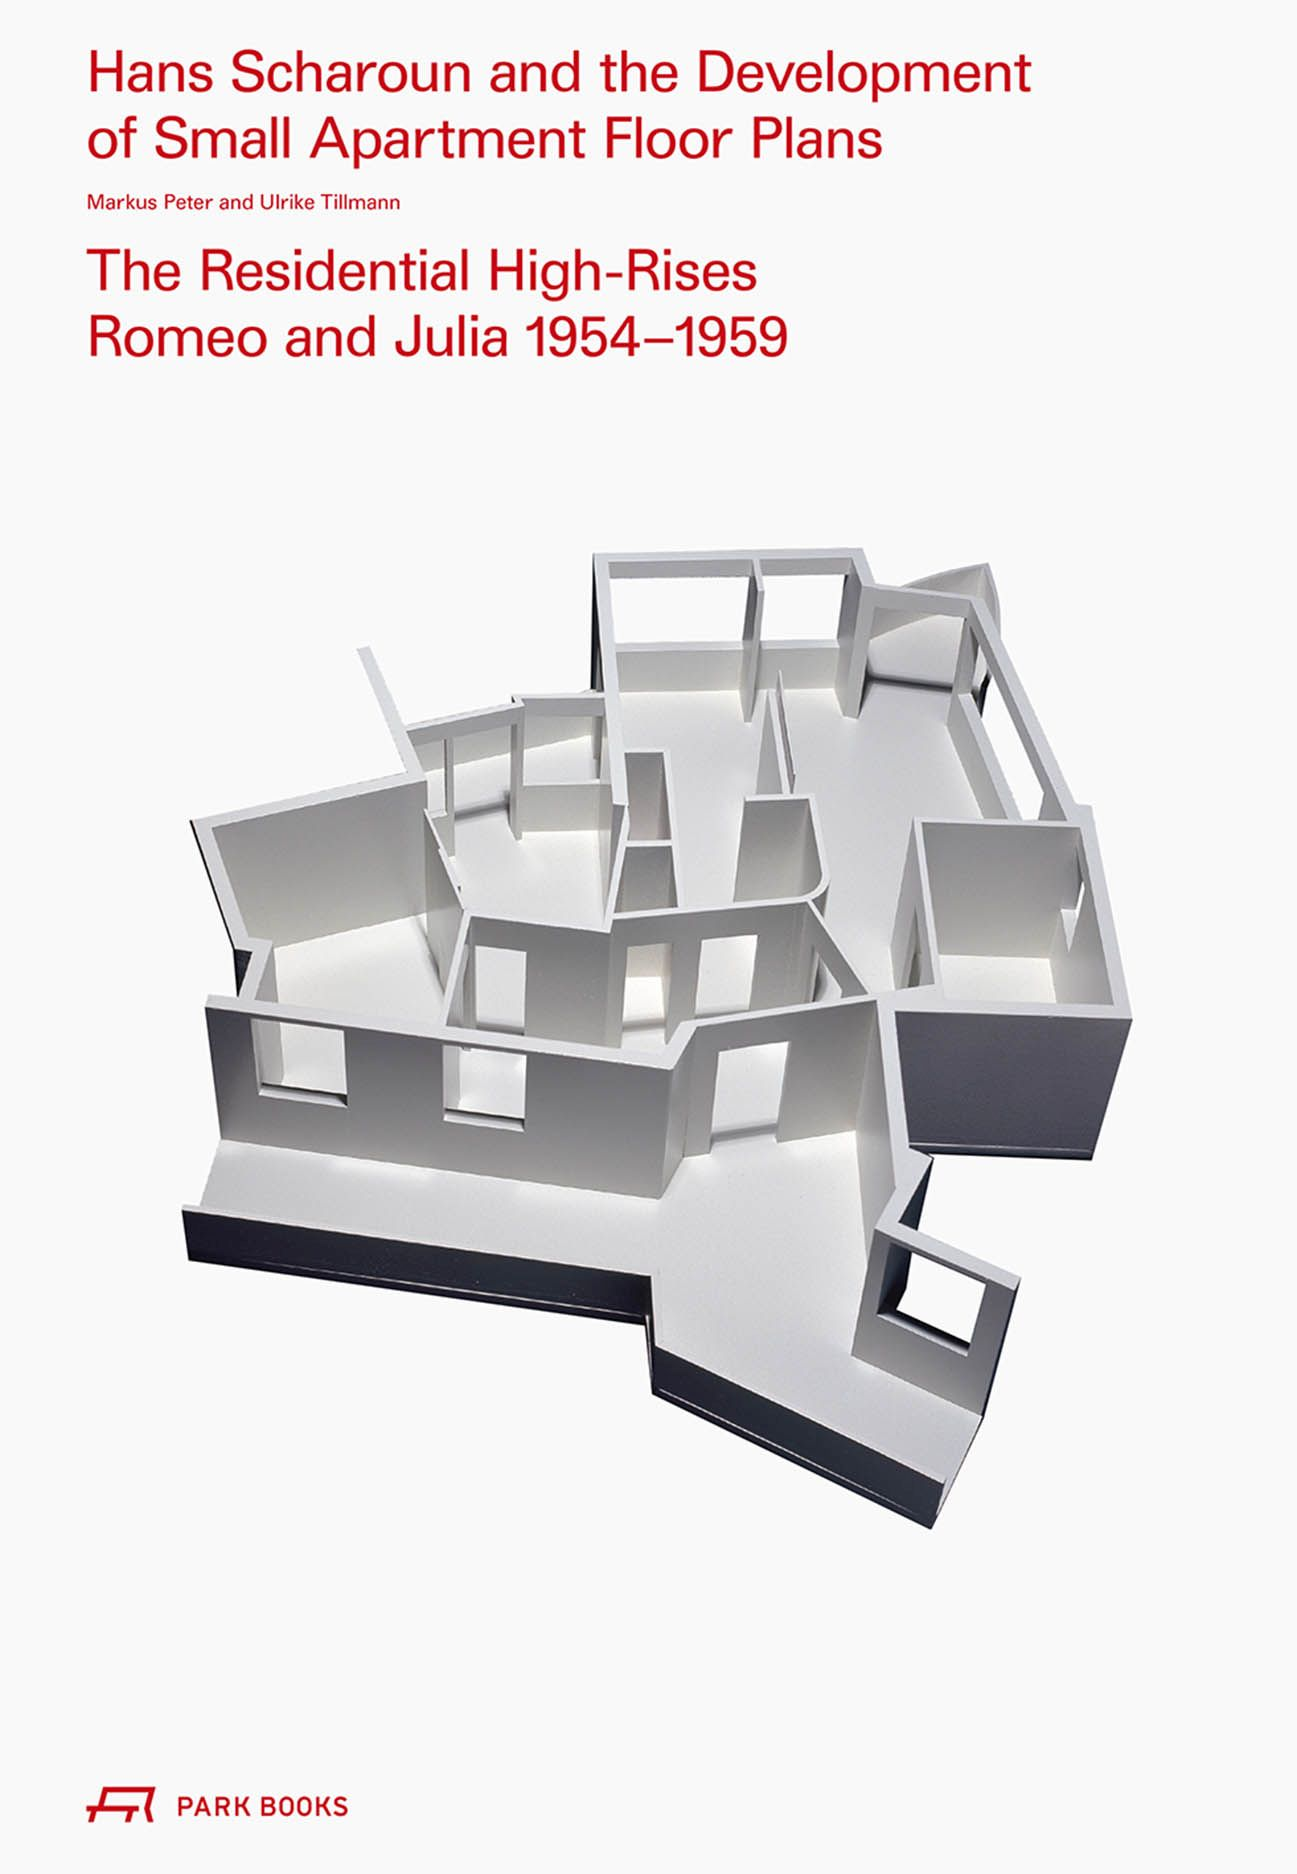 Hans Scharoun and the Development of Small Apartment Floor Plans: The Residential High-Rises Romeo and Julia 1954–1959